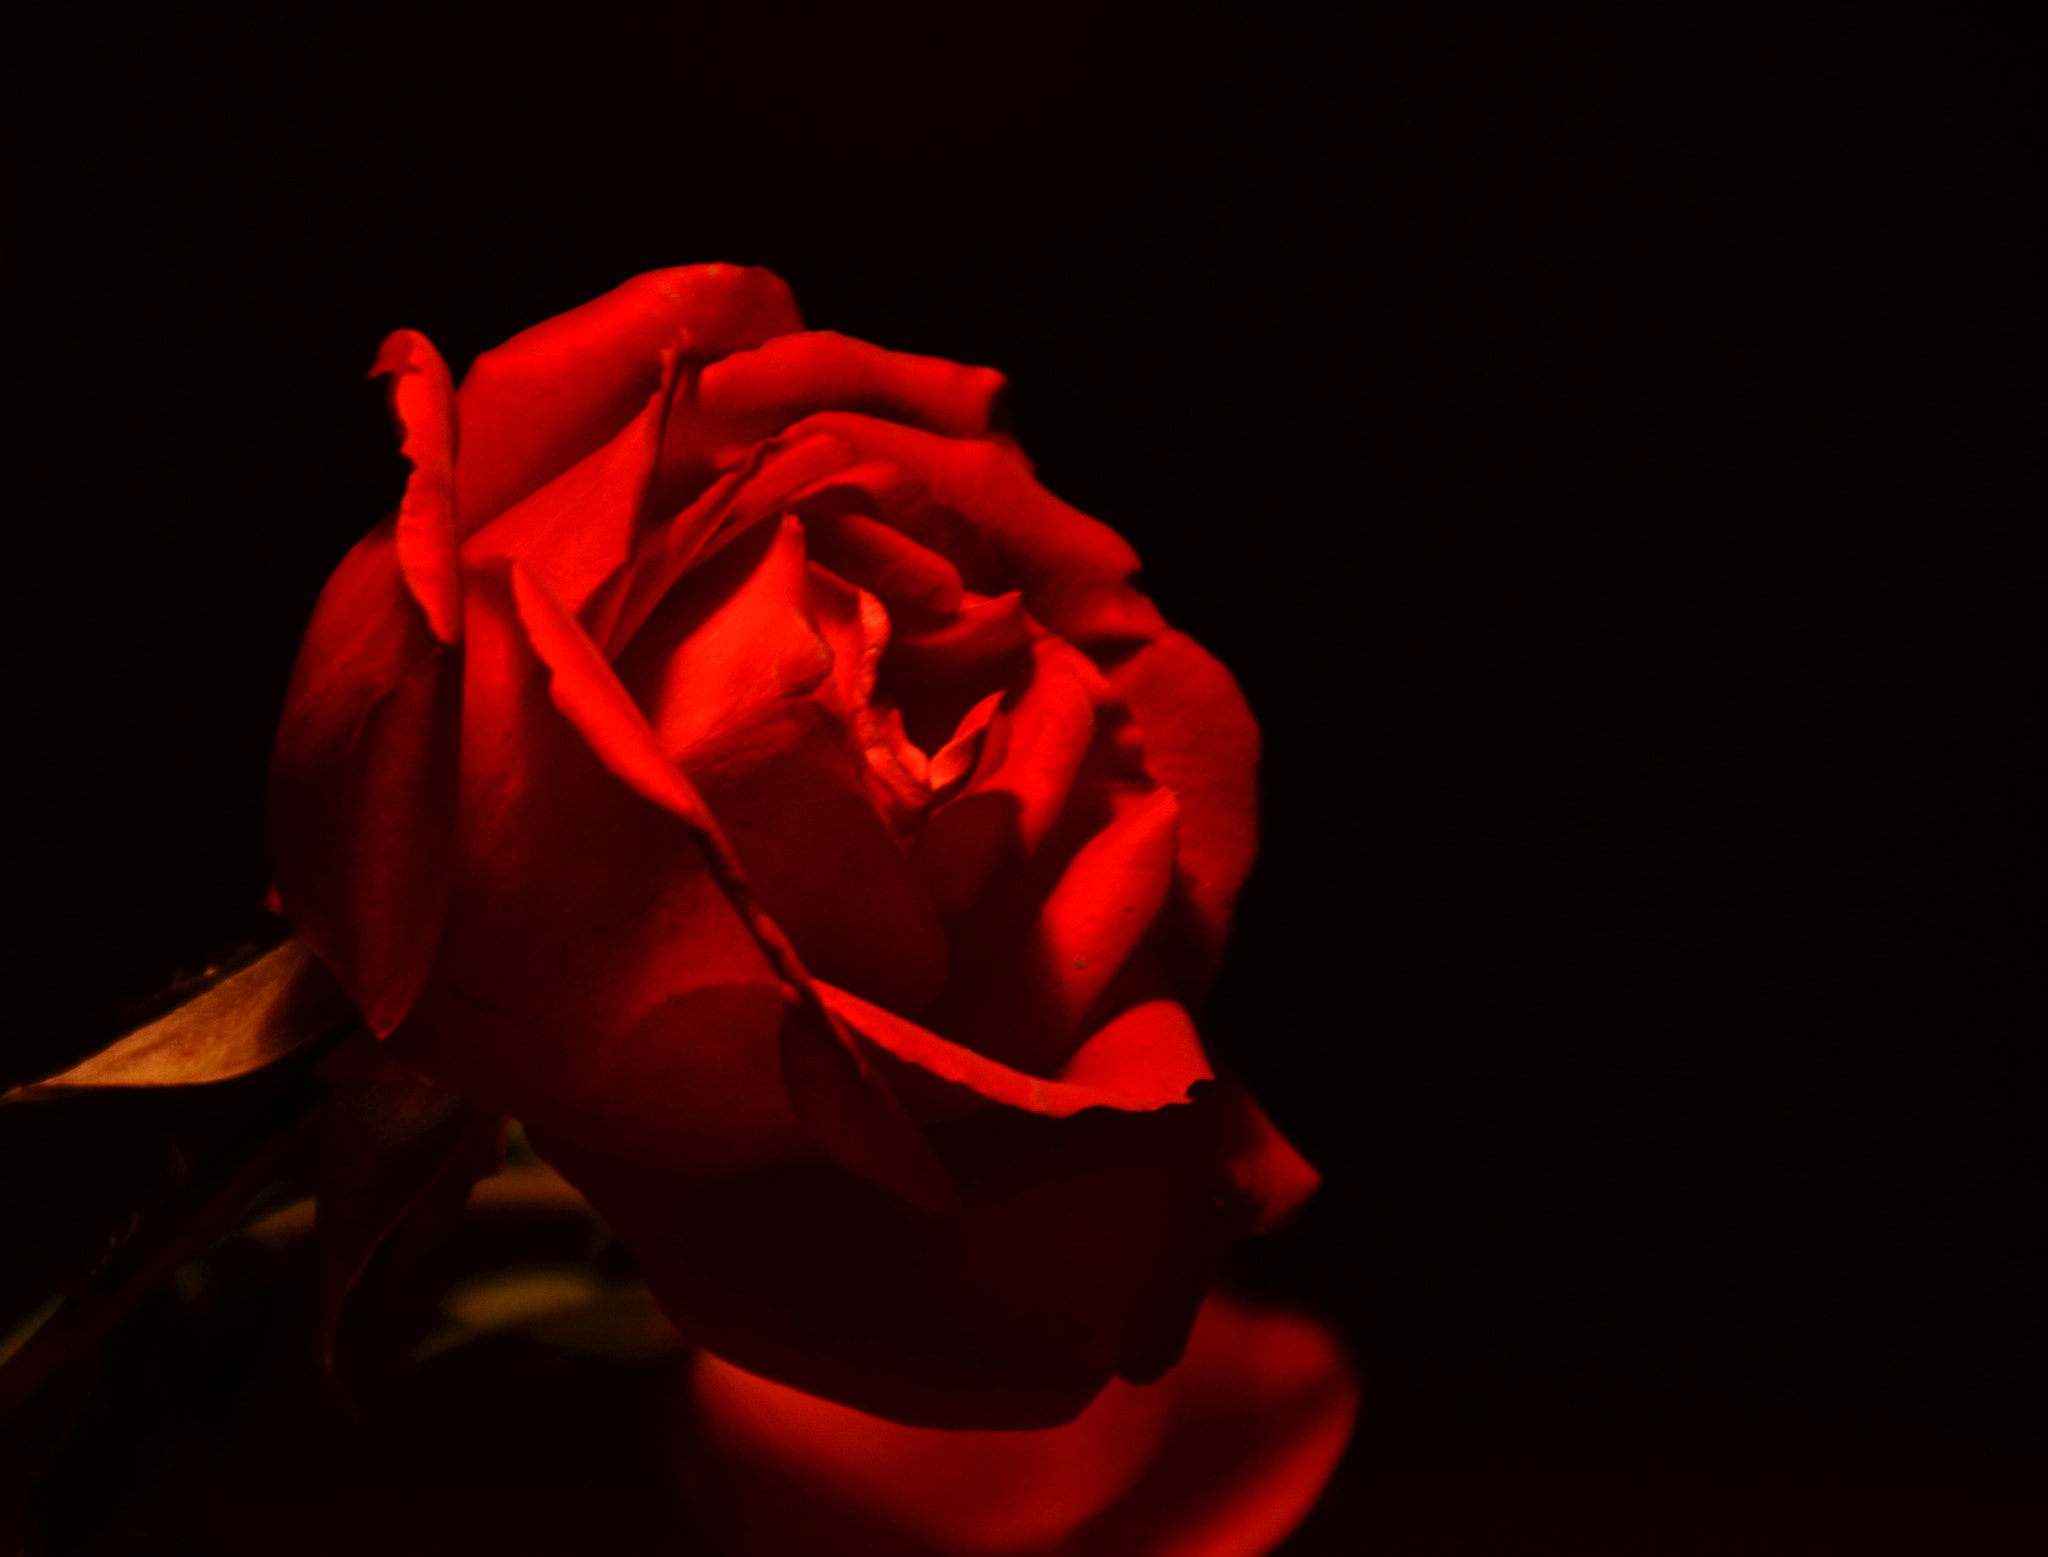 Photograph Rose by Marjolaine Roux on 500px